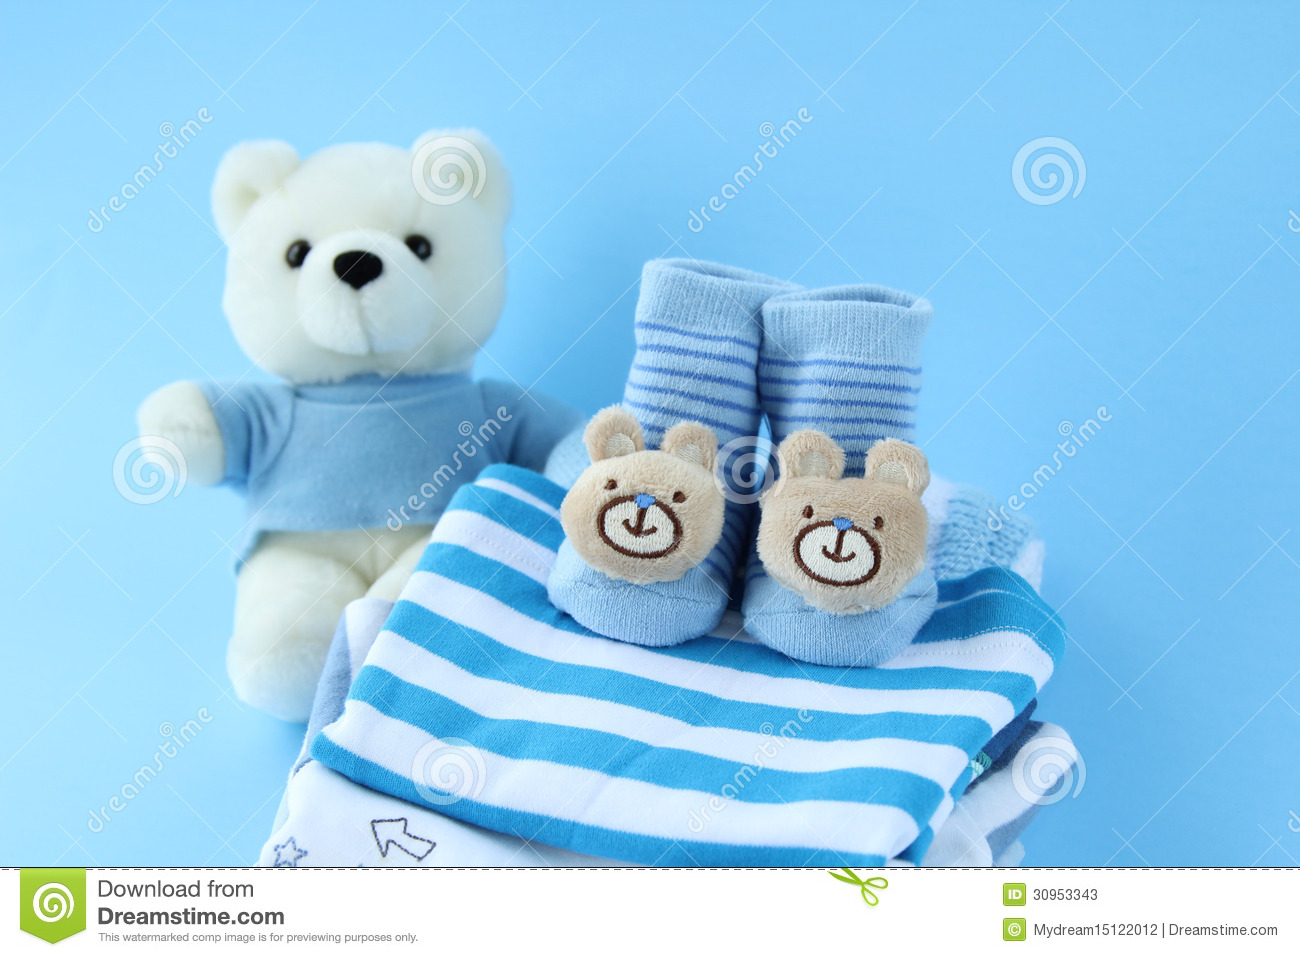 New boy clothes stock image. Image of gifts, presents ...